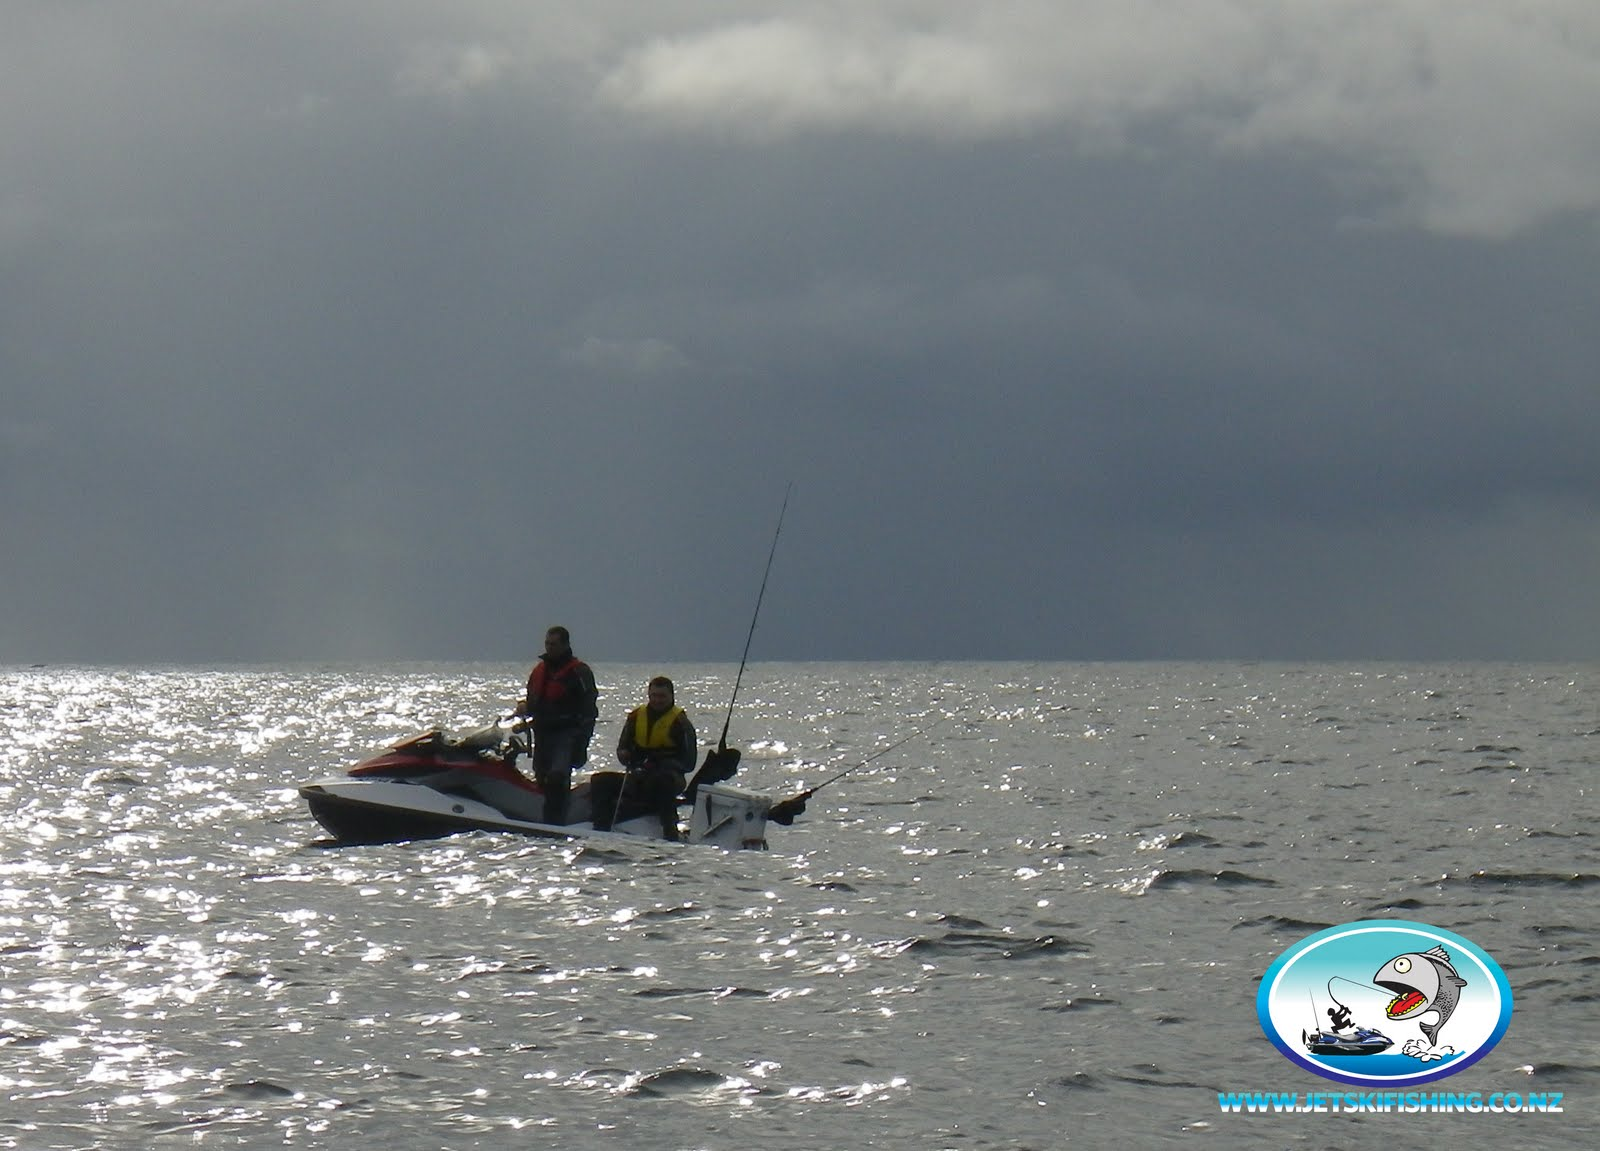 Jet ski fishing blog report 062 some people are just real for Toni fish realty